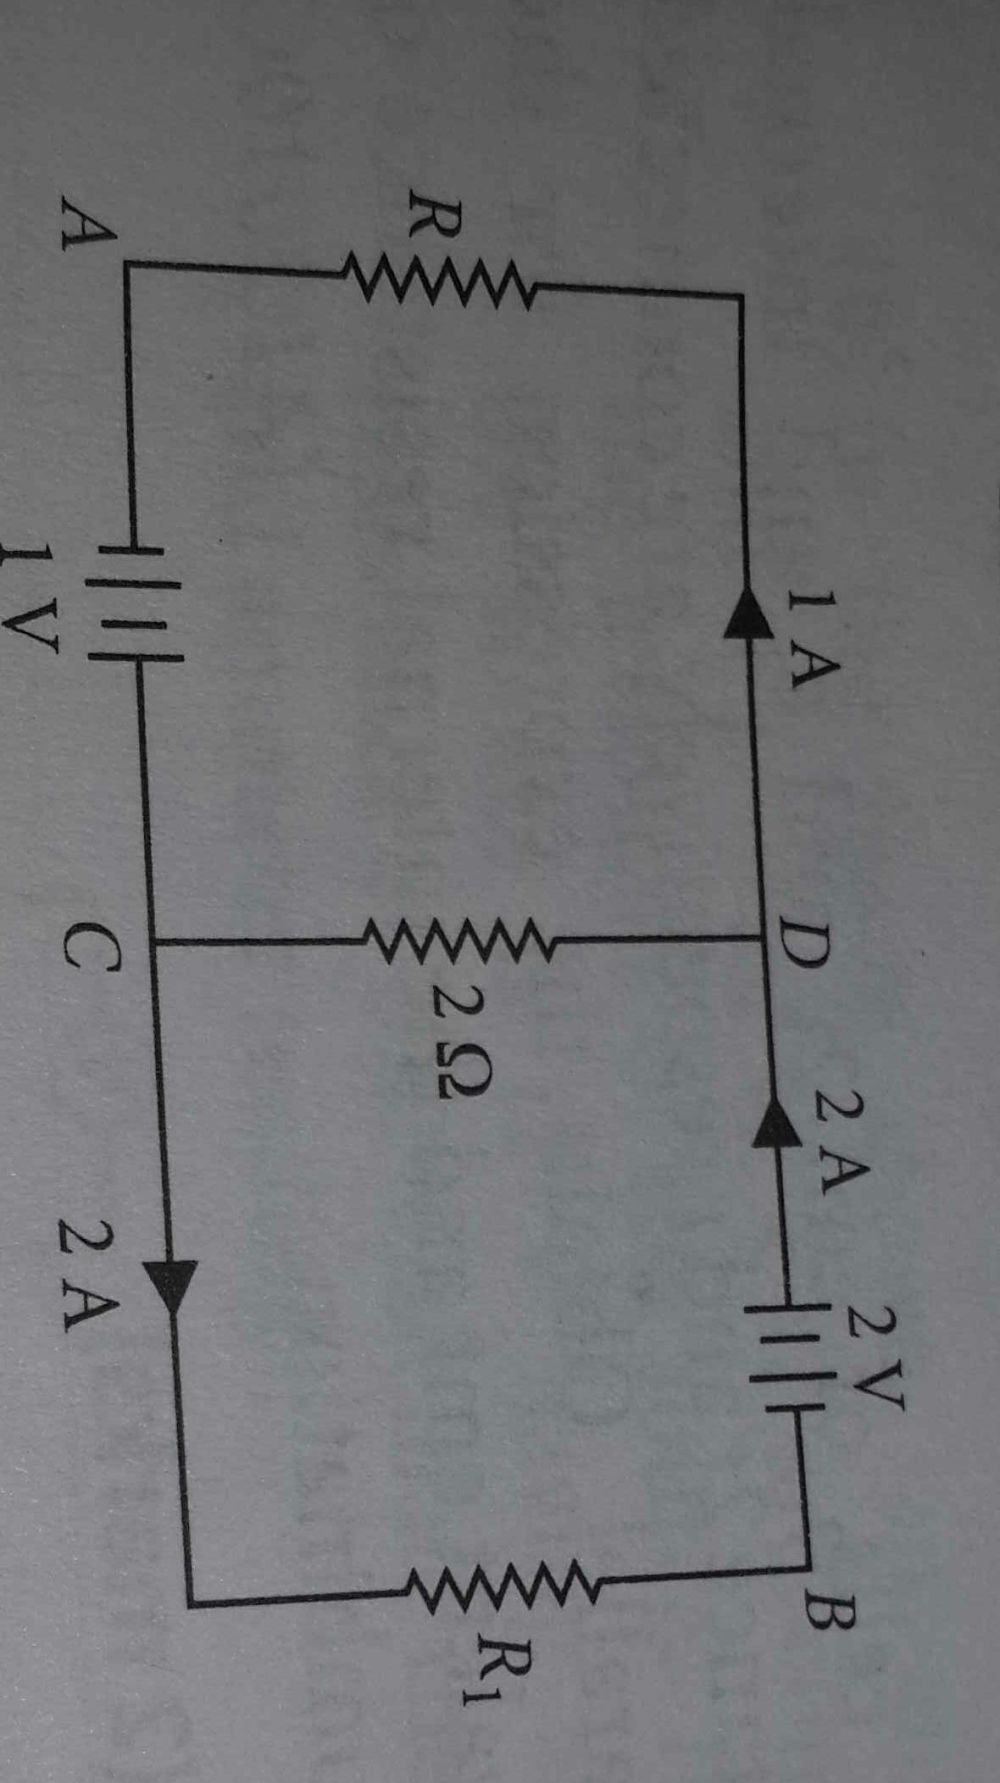 medium resolution of in the given circuit assuming point a to be at zero potential use kirchhoff rule to determine the potential at b